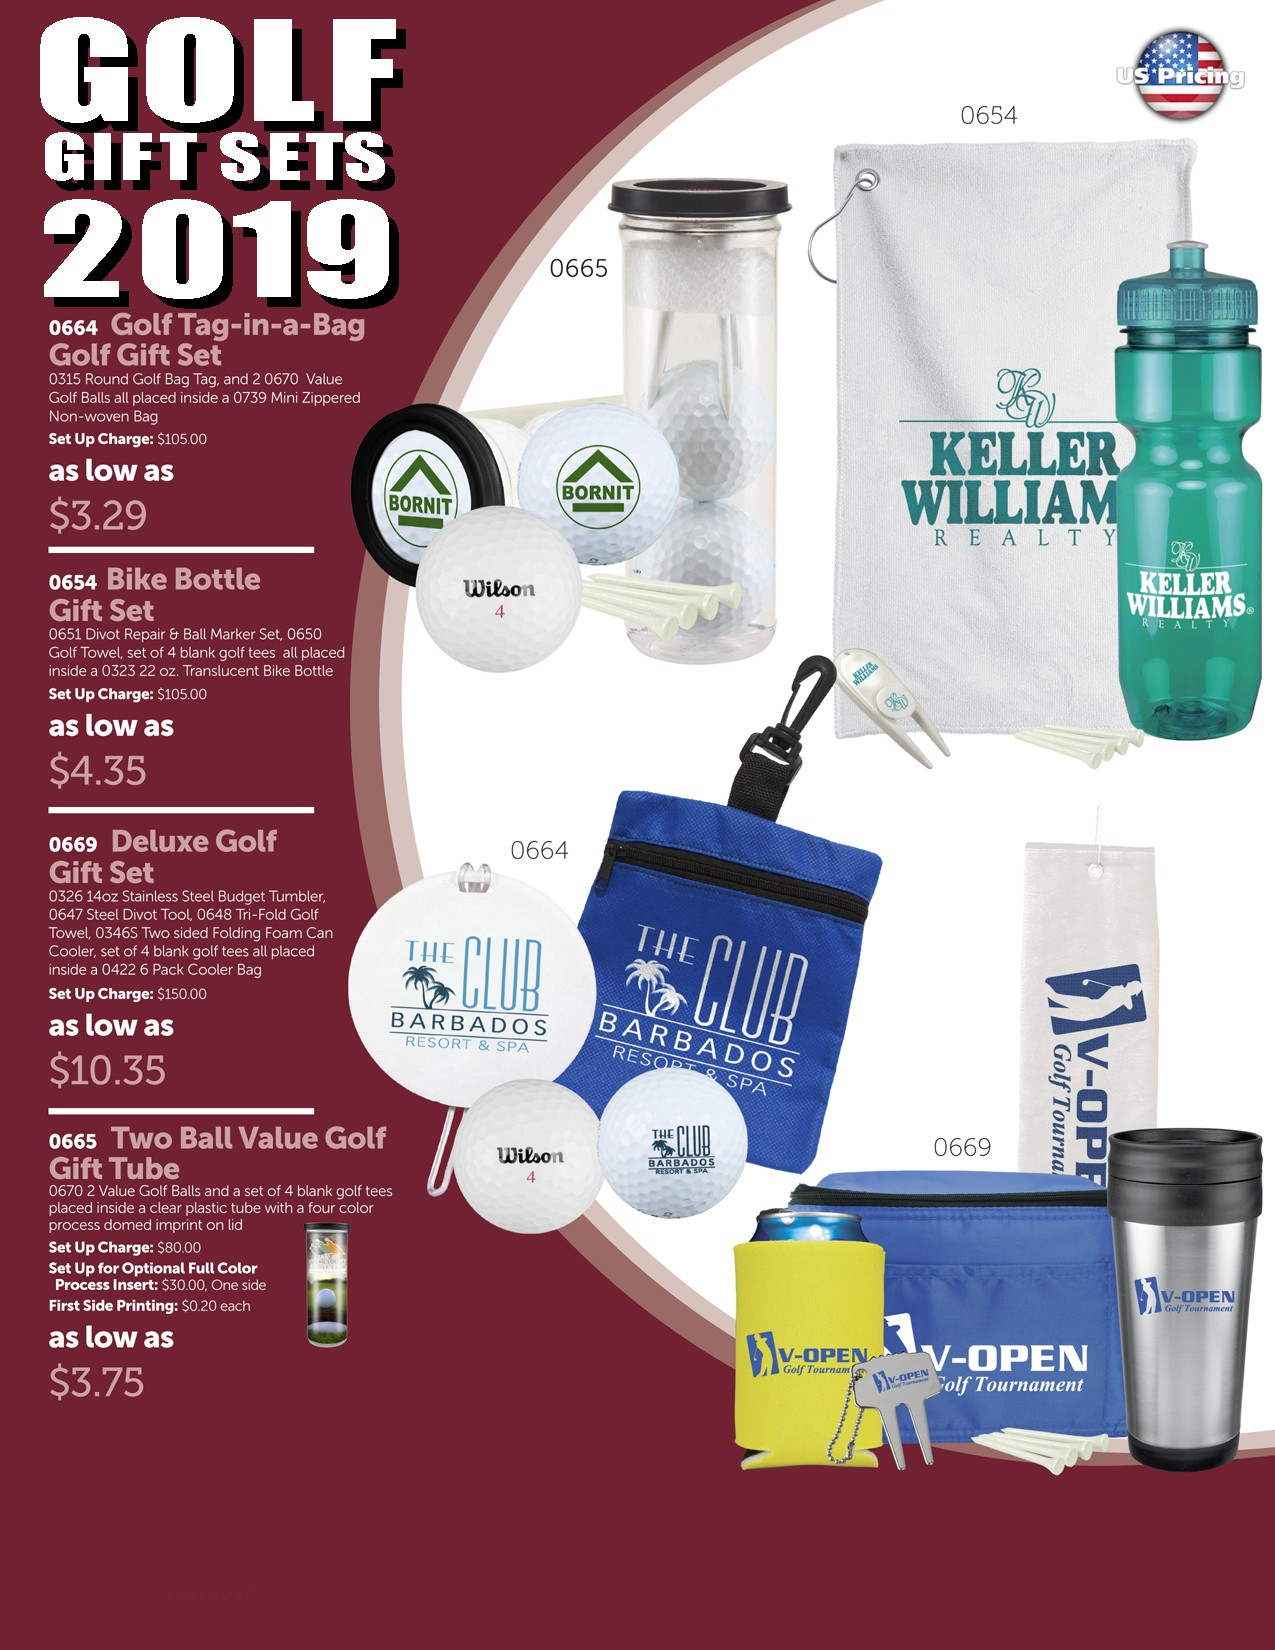 2019 Golf Gift Set Package 1B